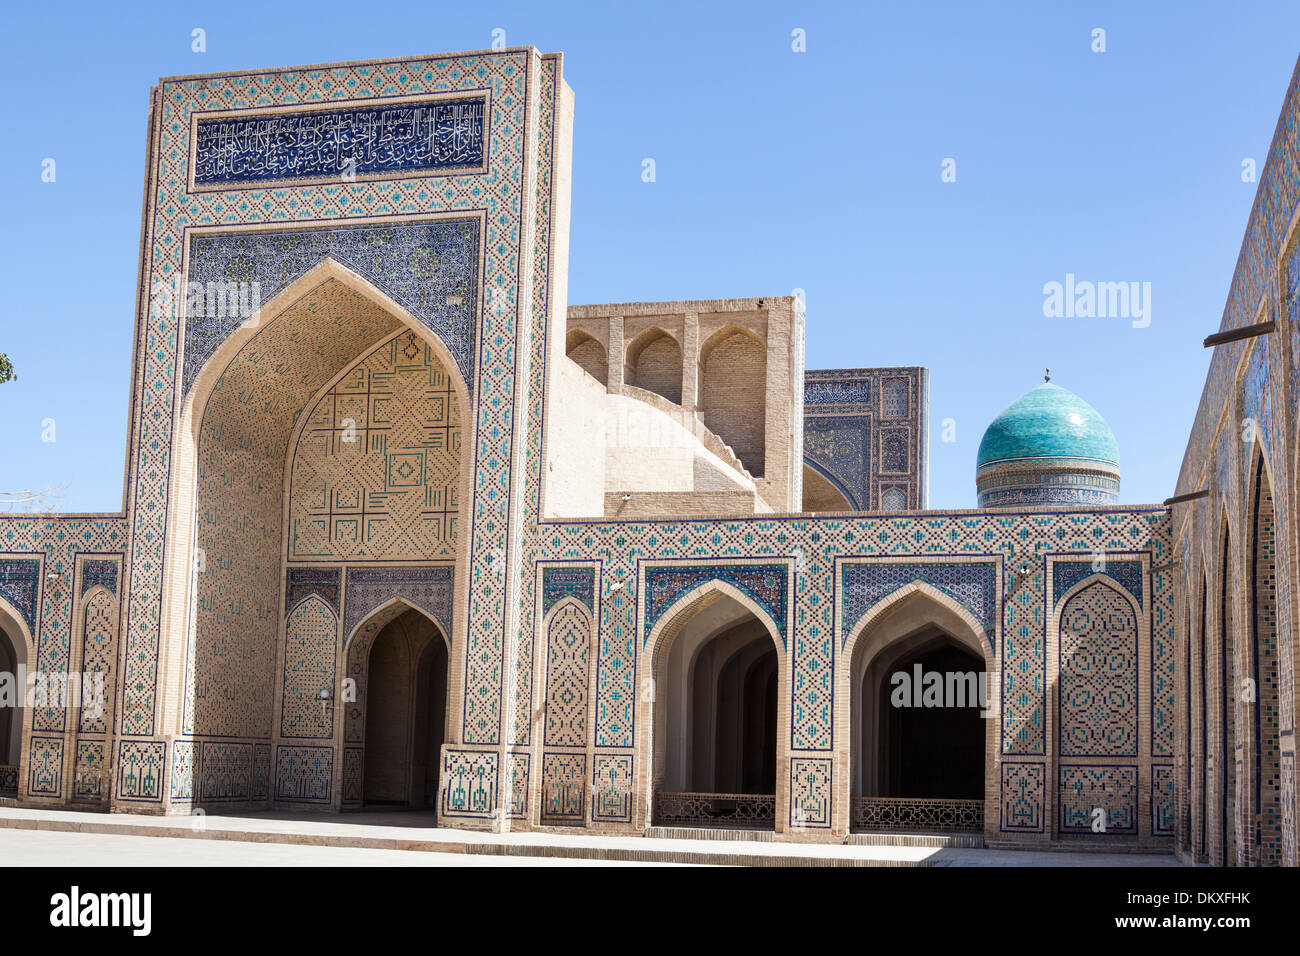 islamic architecture in courtyard kalon mosque kalyan mosque stock photo royalty free image. Black Bedroom Furniture Sets. Home Design Ideas